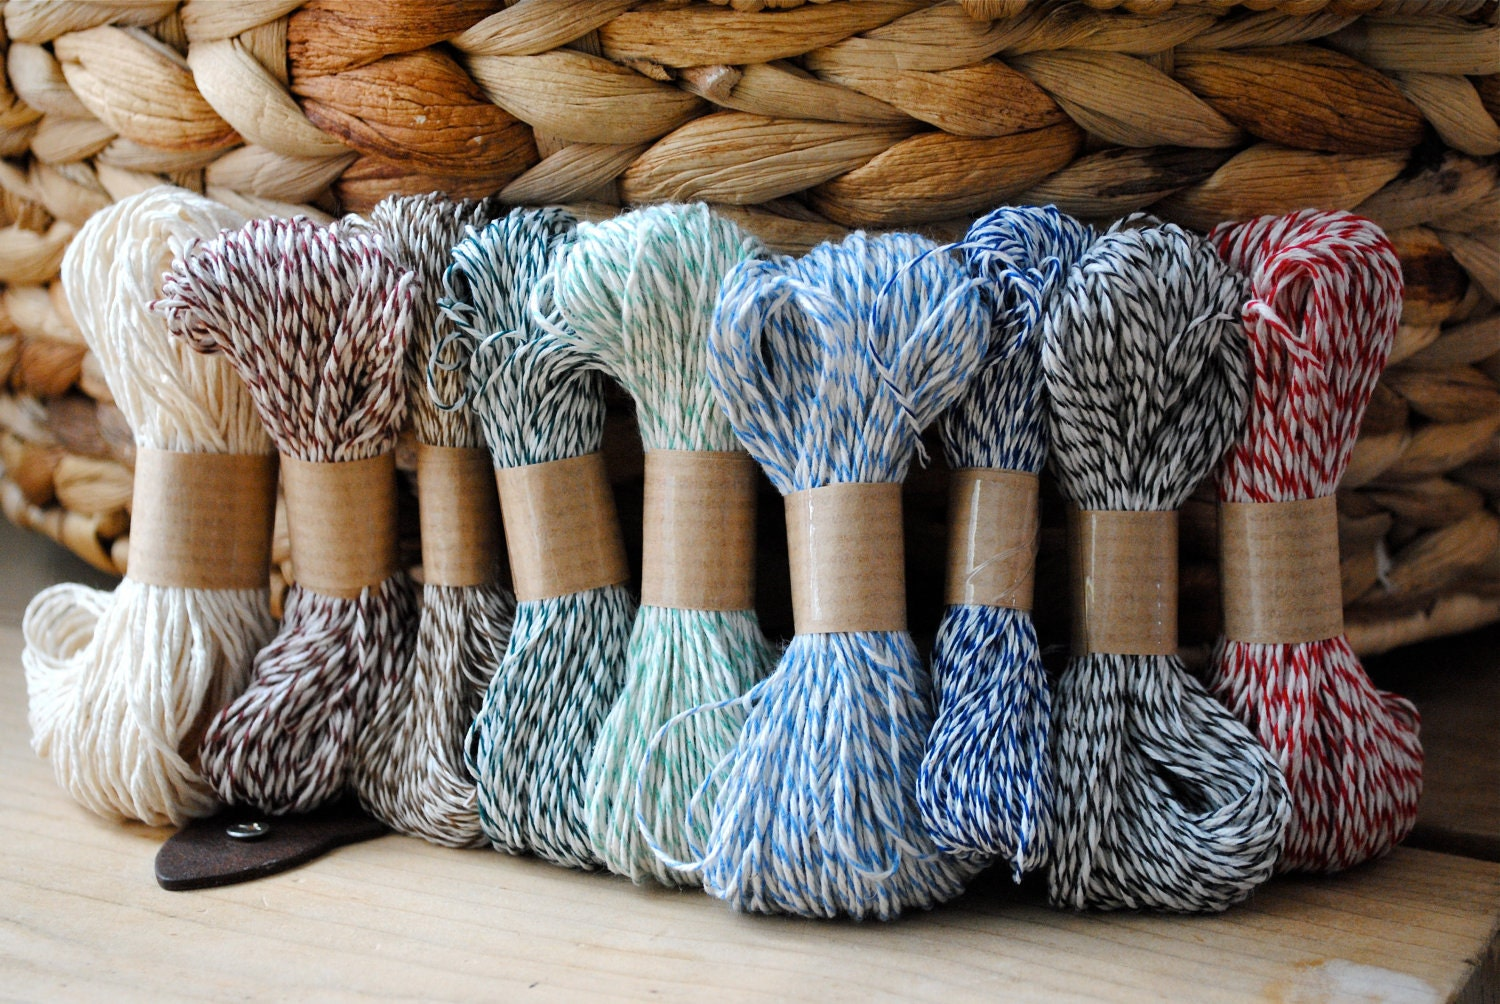 Baker's Twine Sampler- All 9 Colors...225 yards total (675 feet)